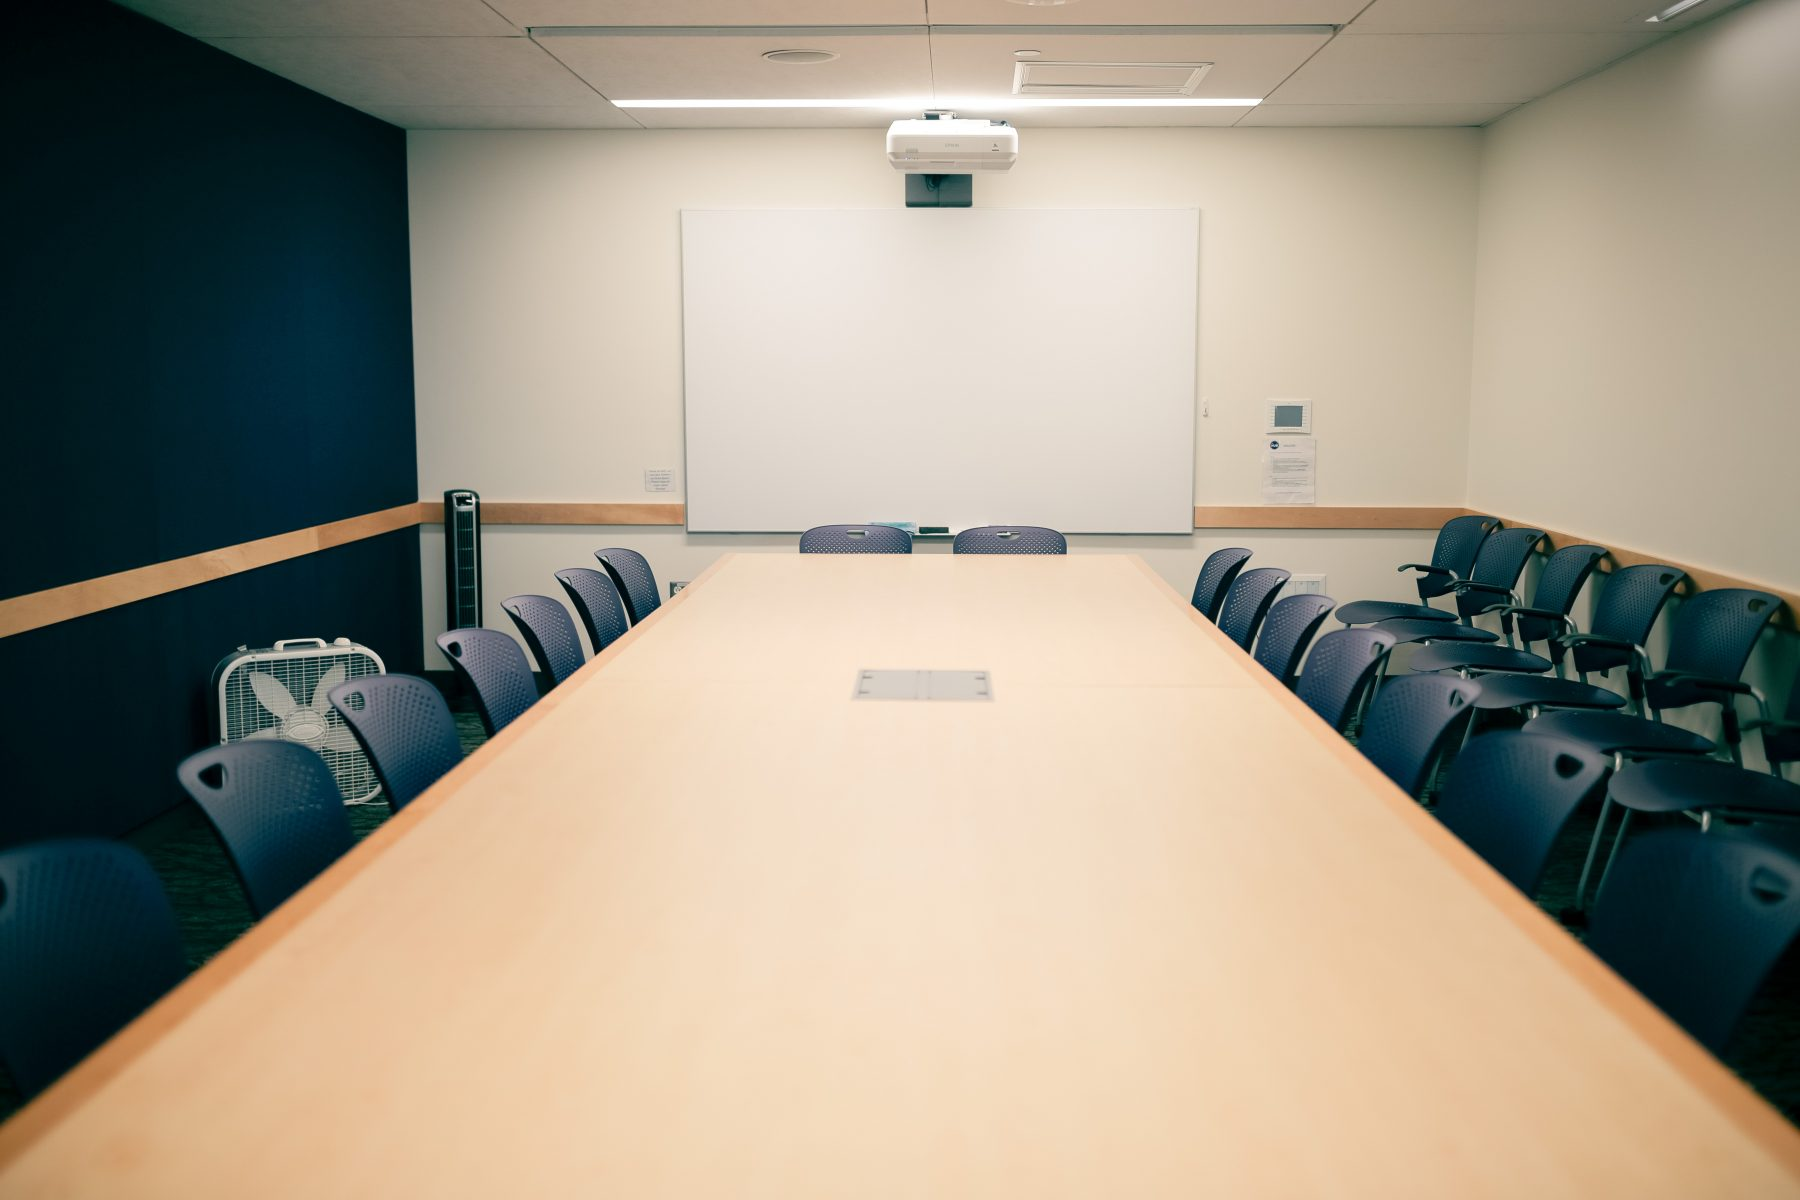 This conference room includes a projector and Solstice Pod